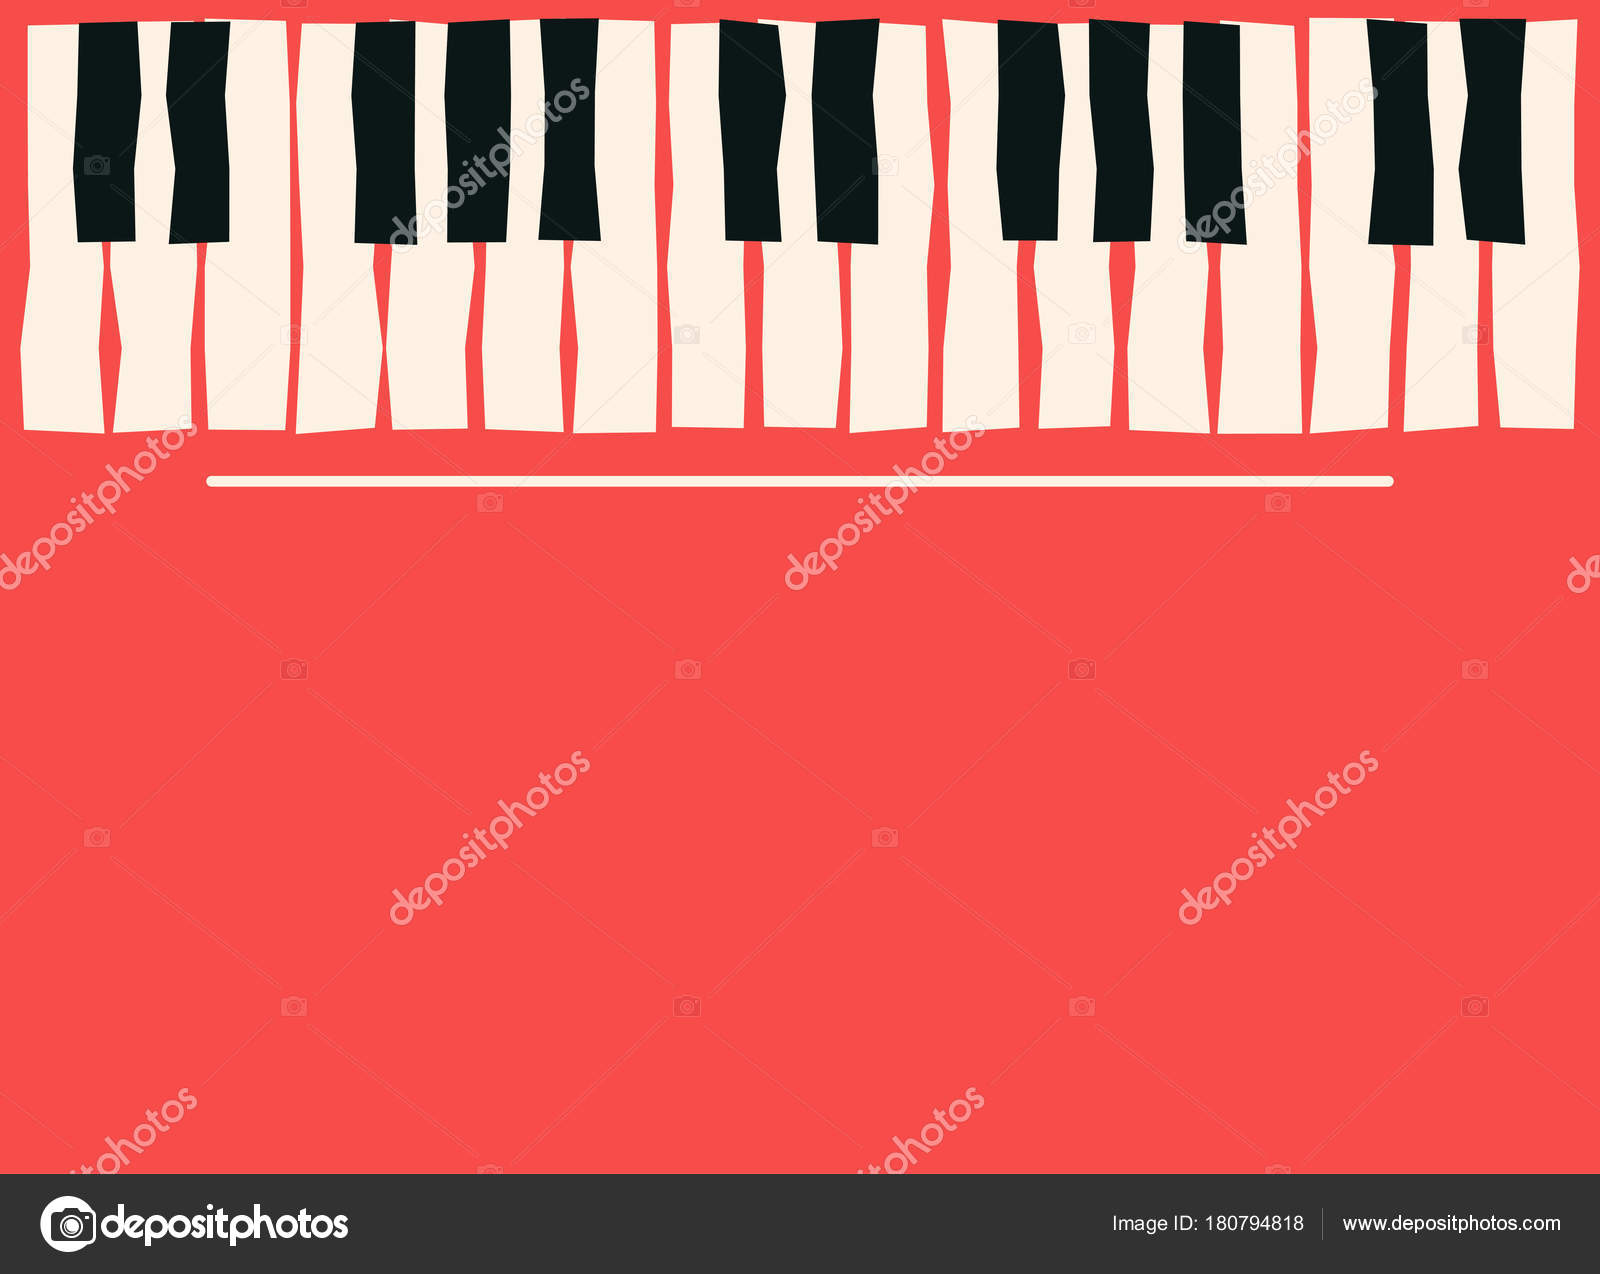 Piano Keys Music Poster Template Jazz Blues Concert Background Stock Vector